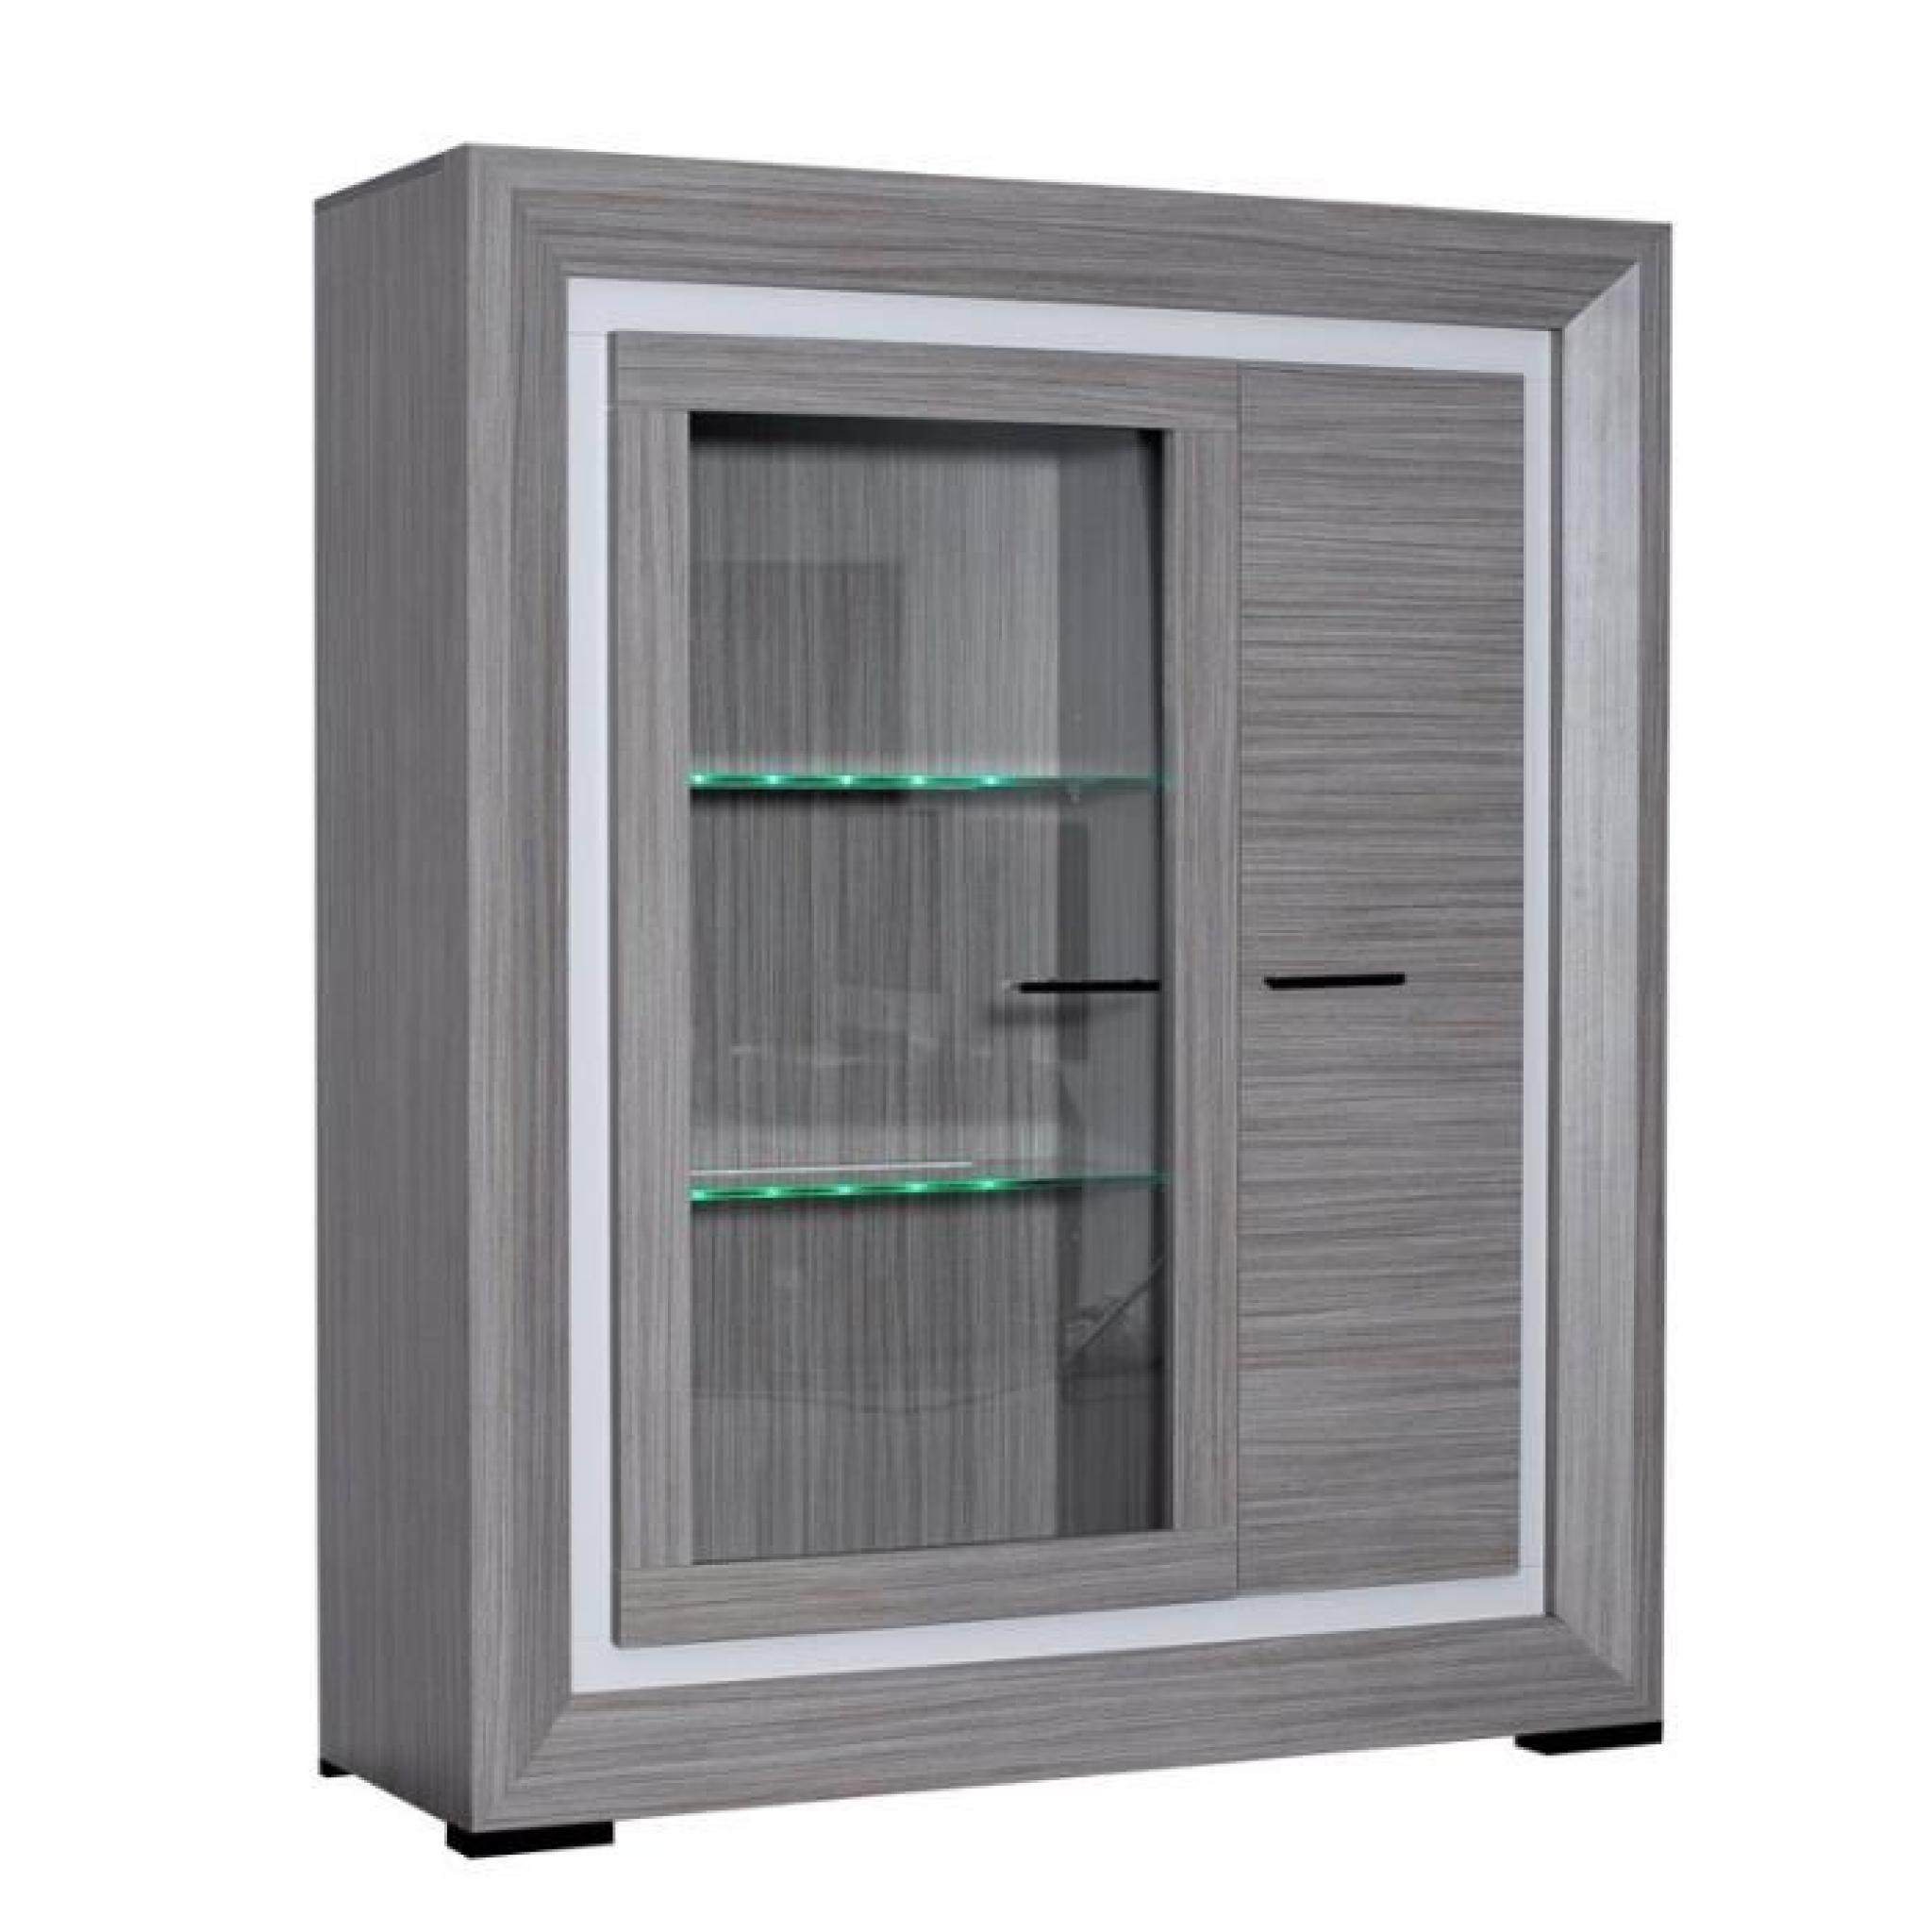 armoire vitrine de salon teck cendr alyne achat vente buffet pas cher couleur et. Black Bedroom Furniture Sets. Home Design Ideas